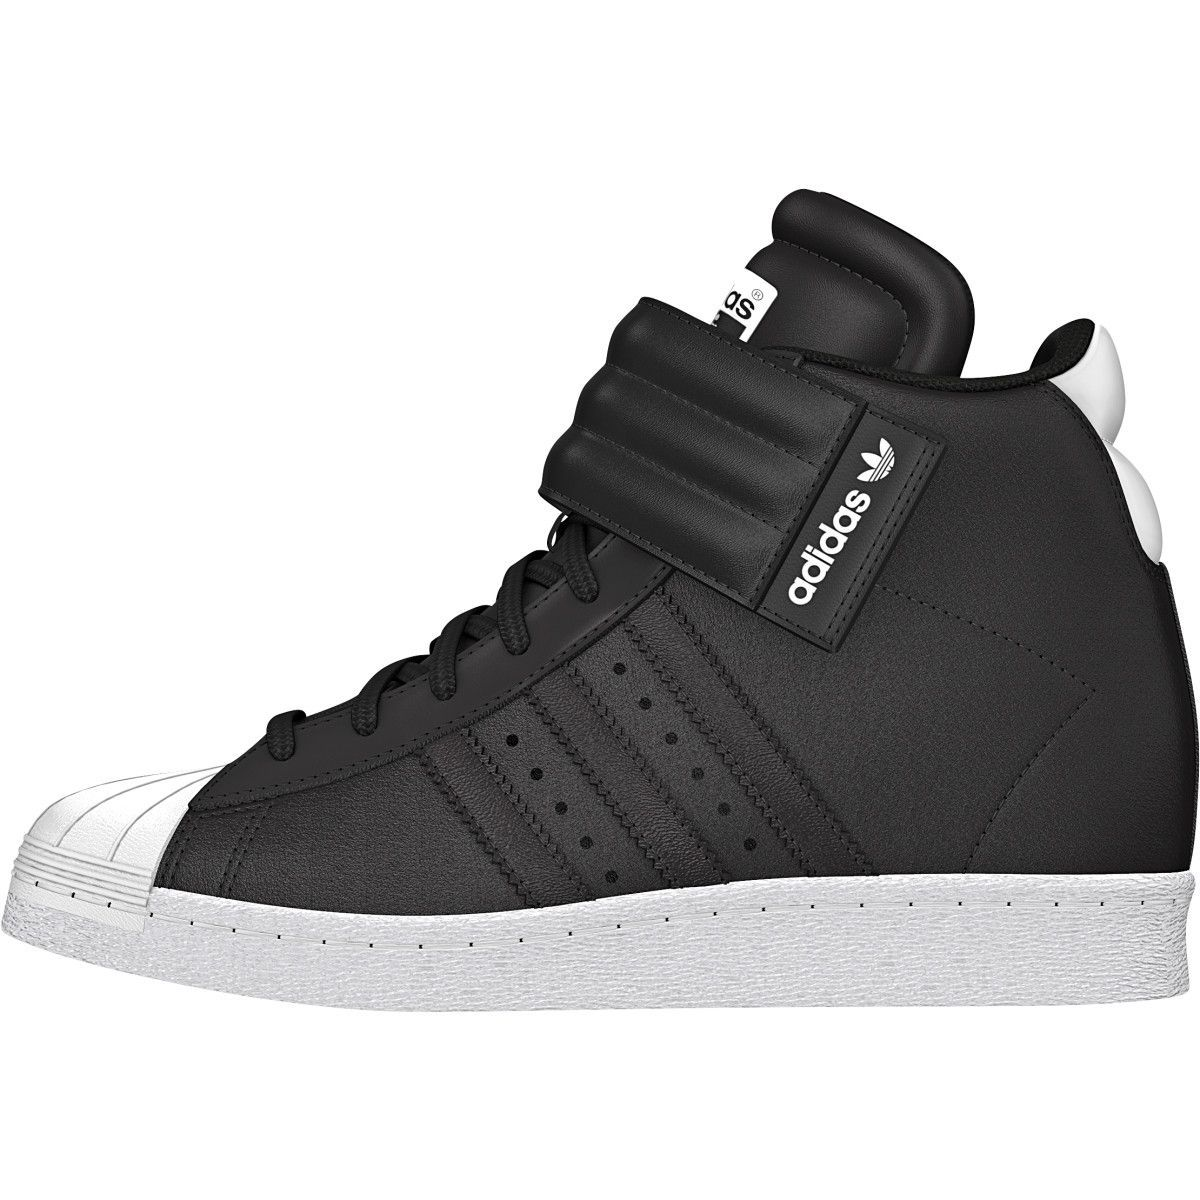 Adidas Originals Superstar UP Strap W Black White fashion wedge sneakers